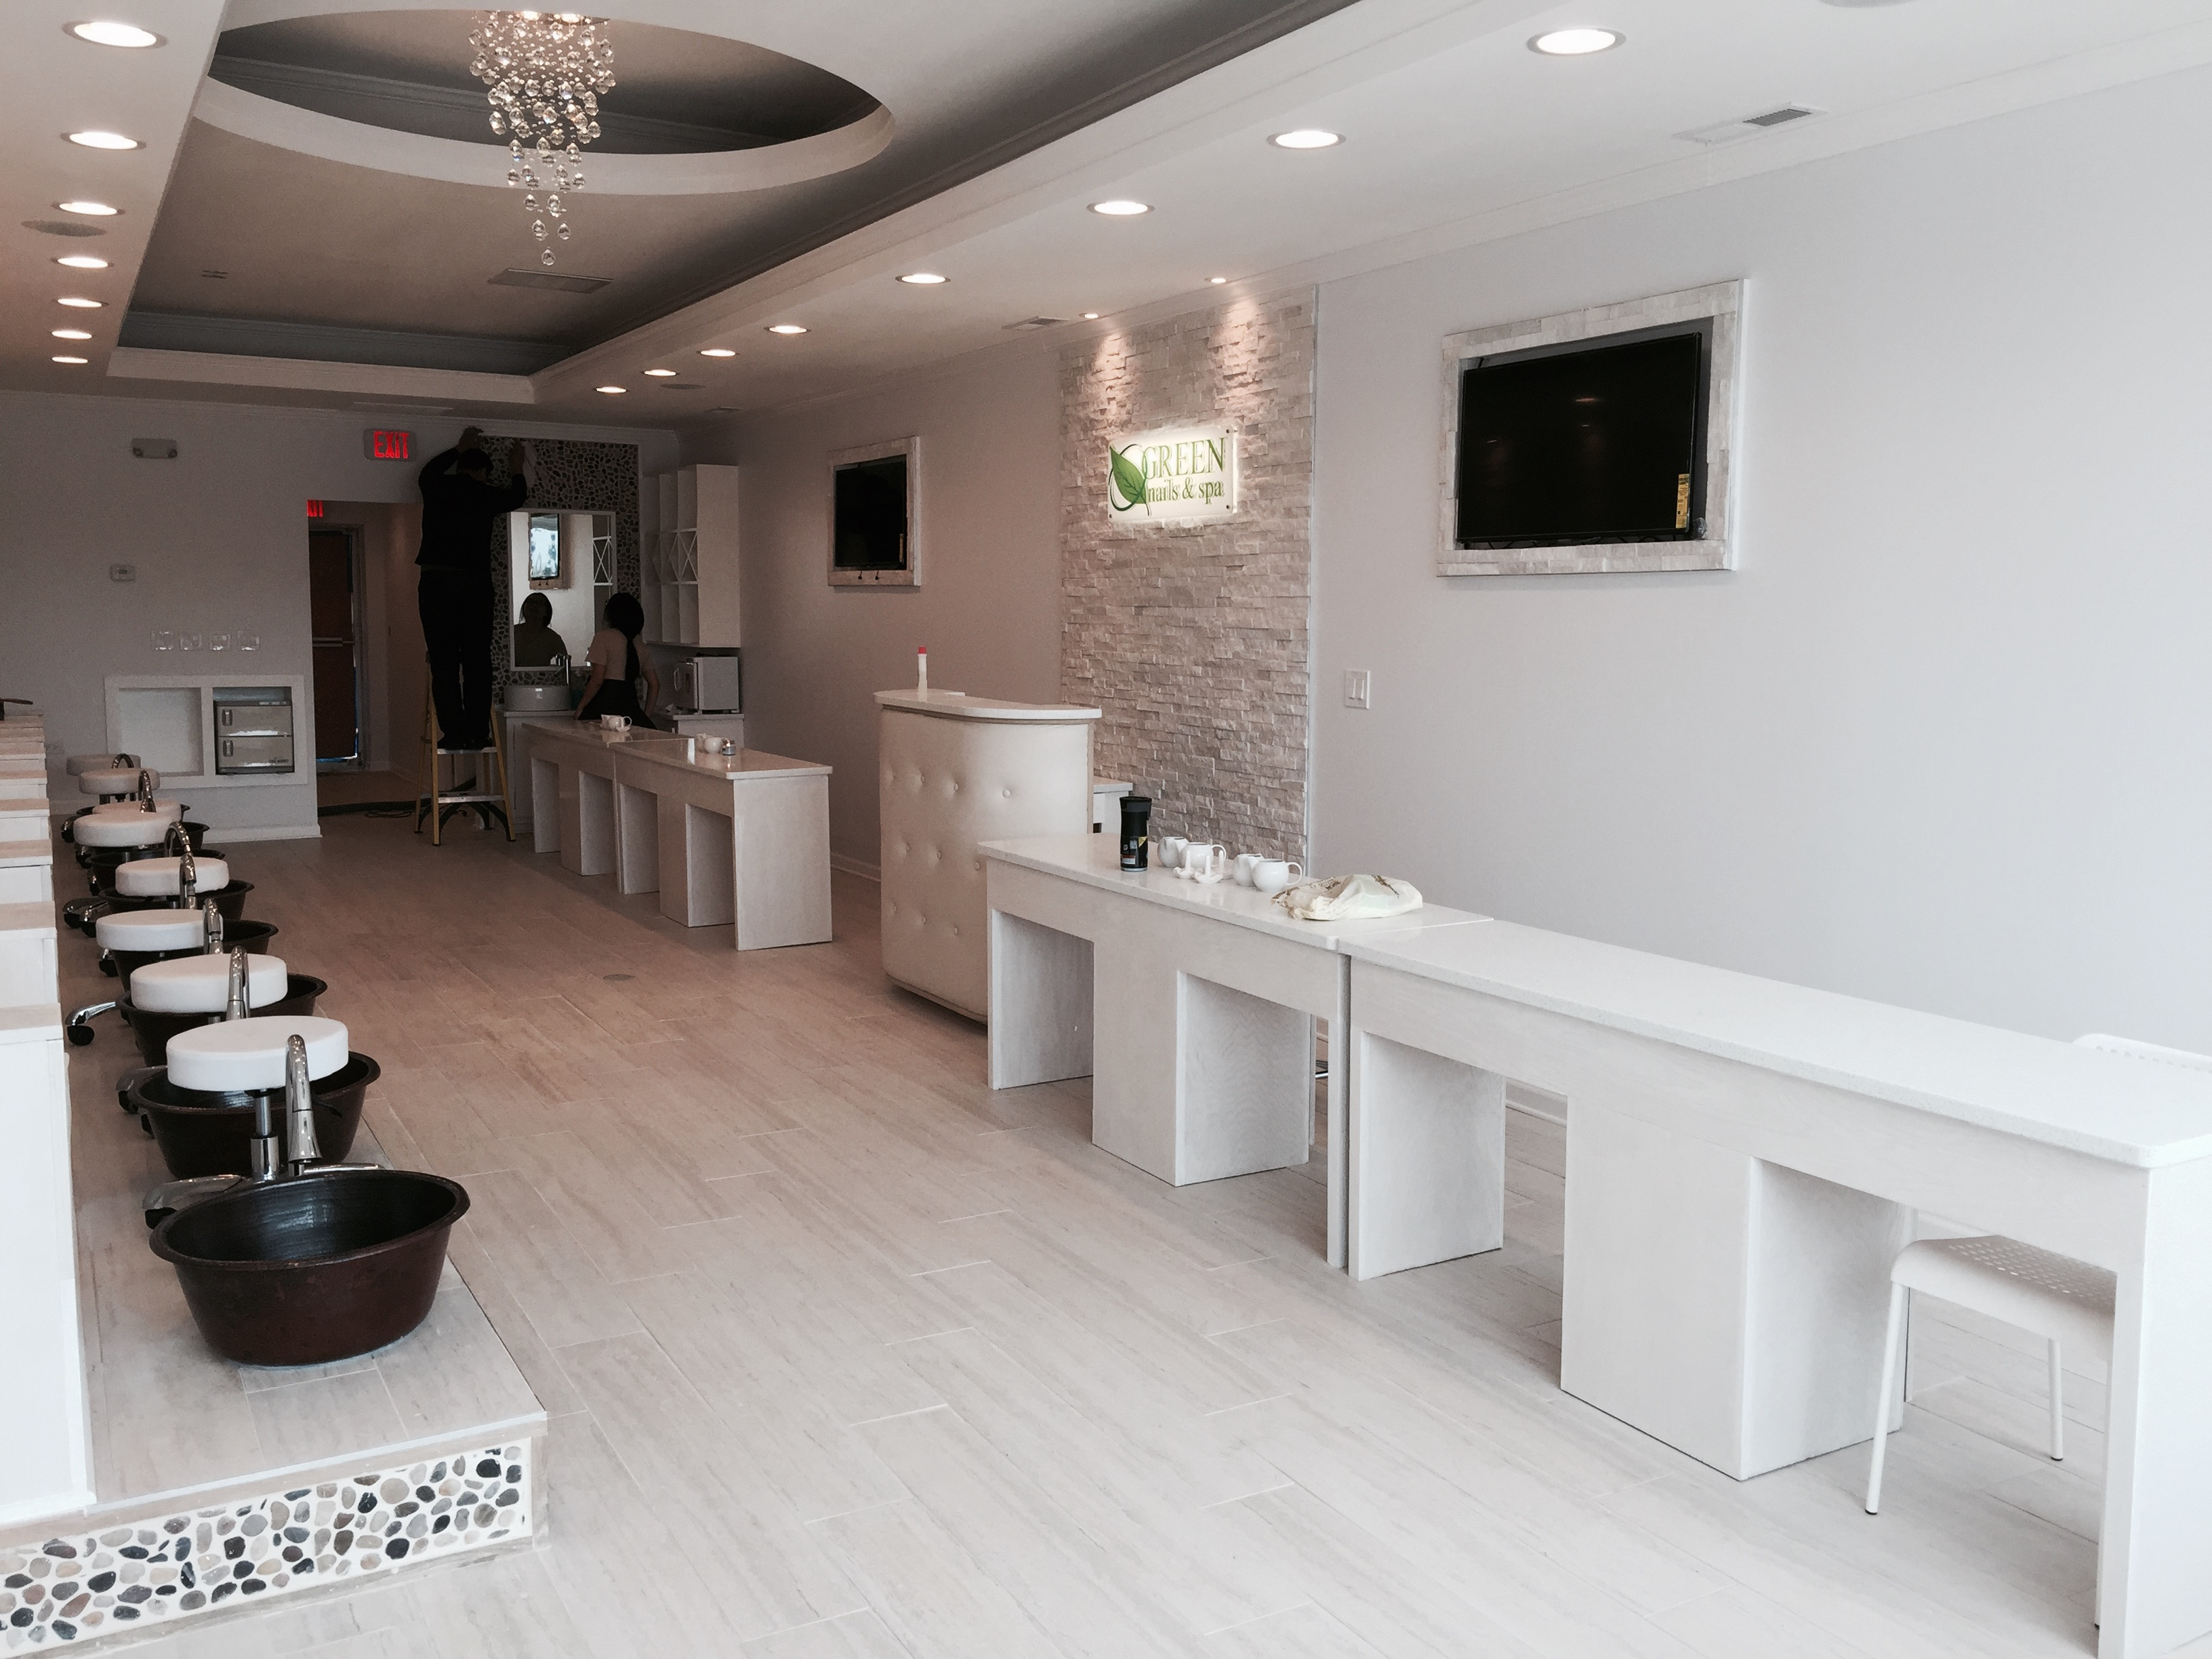 Green nails spa design by mongol group construction for Salon construction